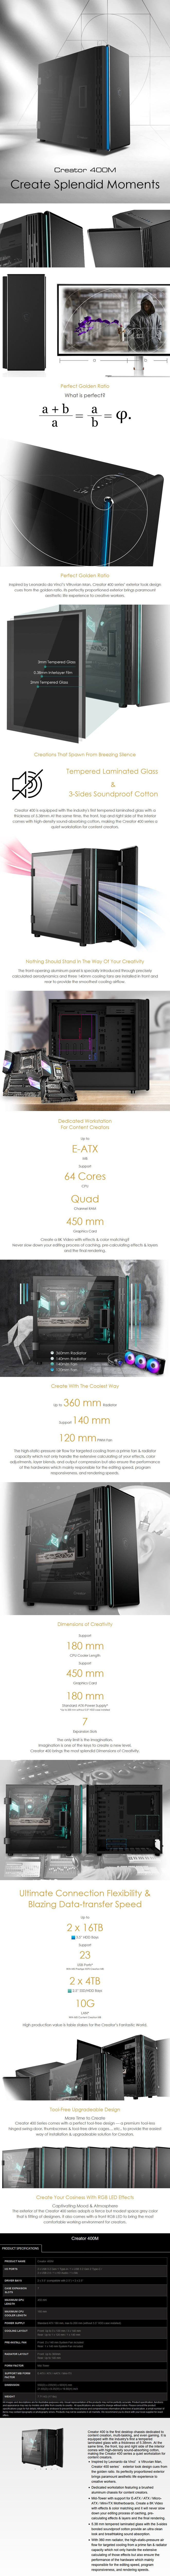 MSI Creater 400M Tempered Glass Mid-Tower ATX Case - Overview 1